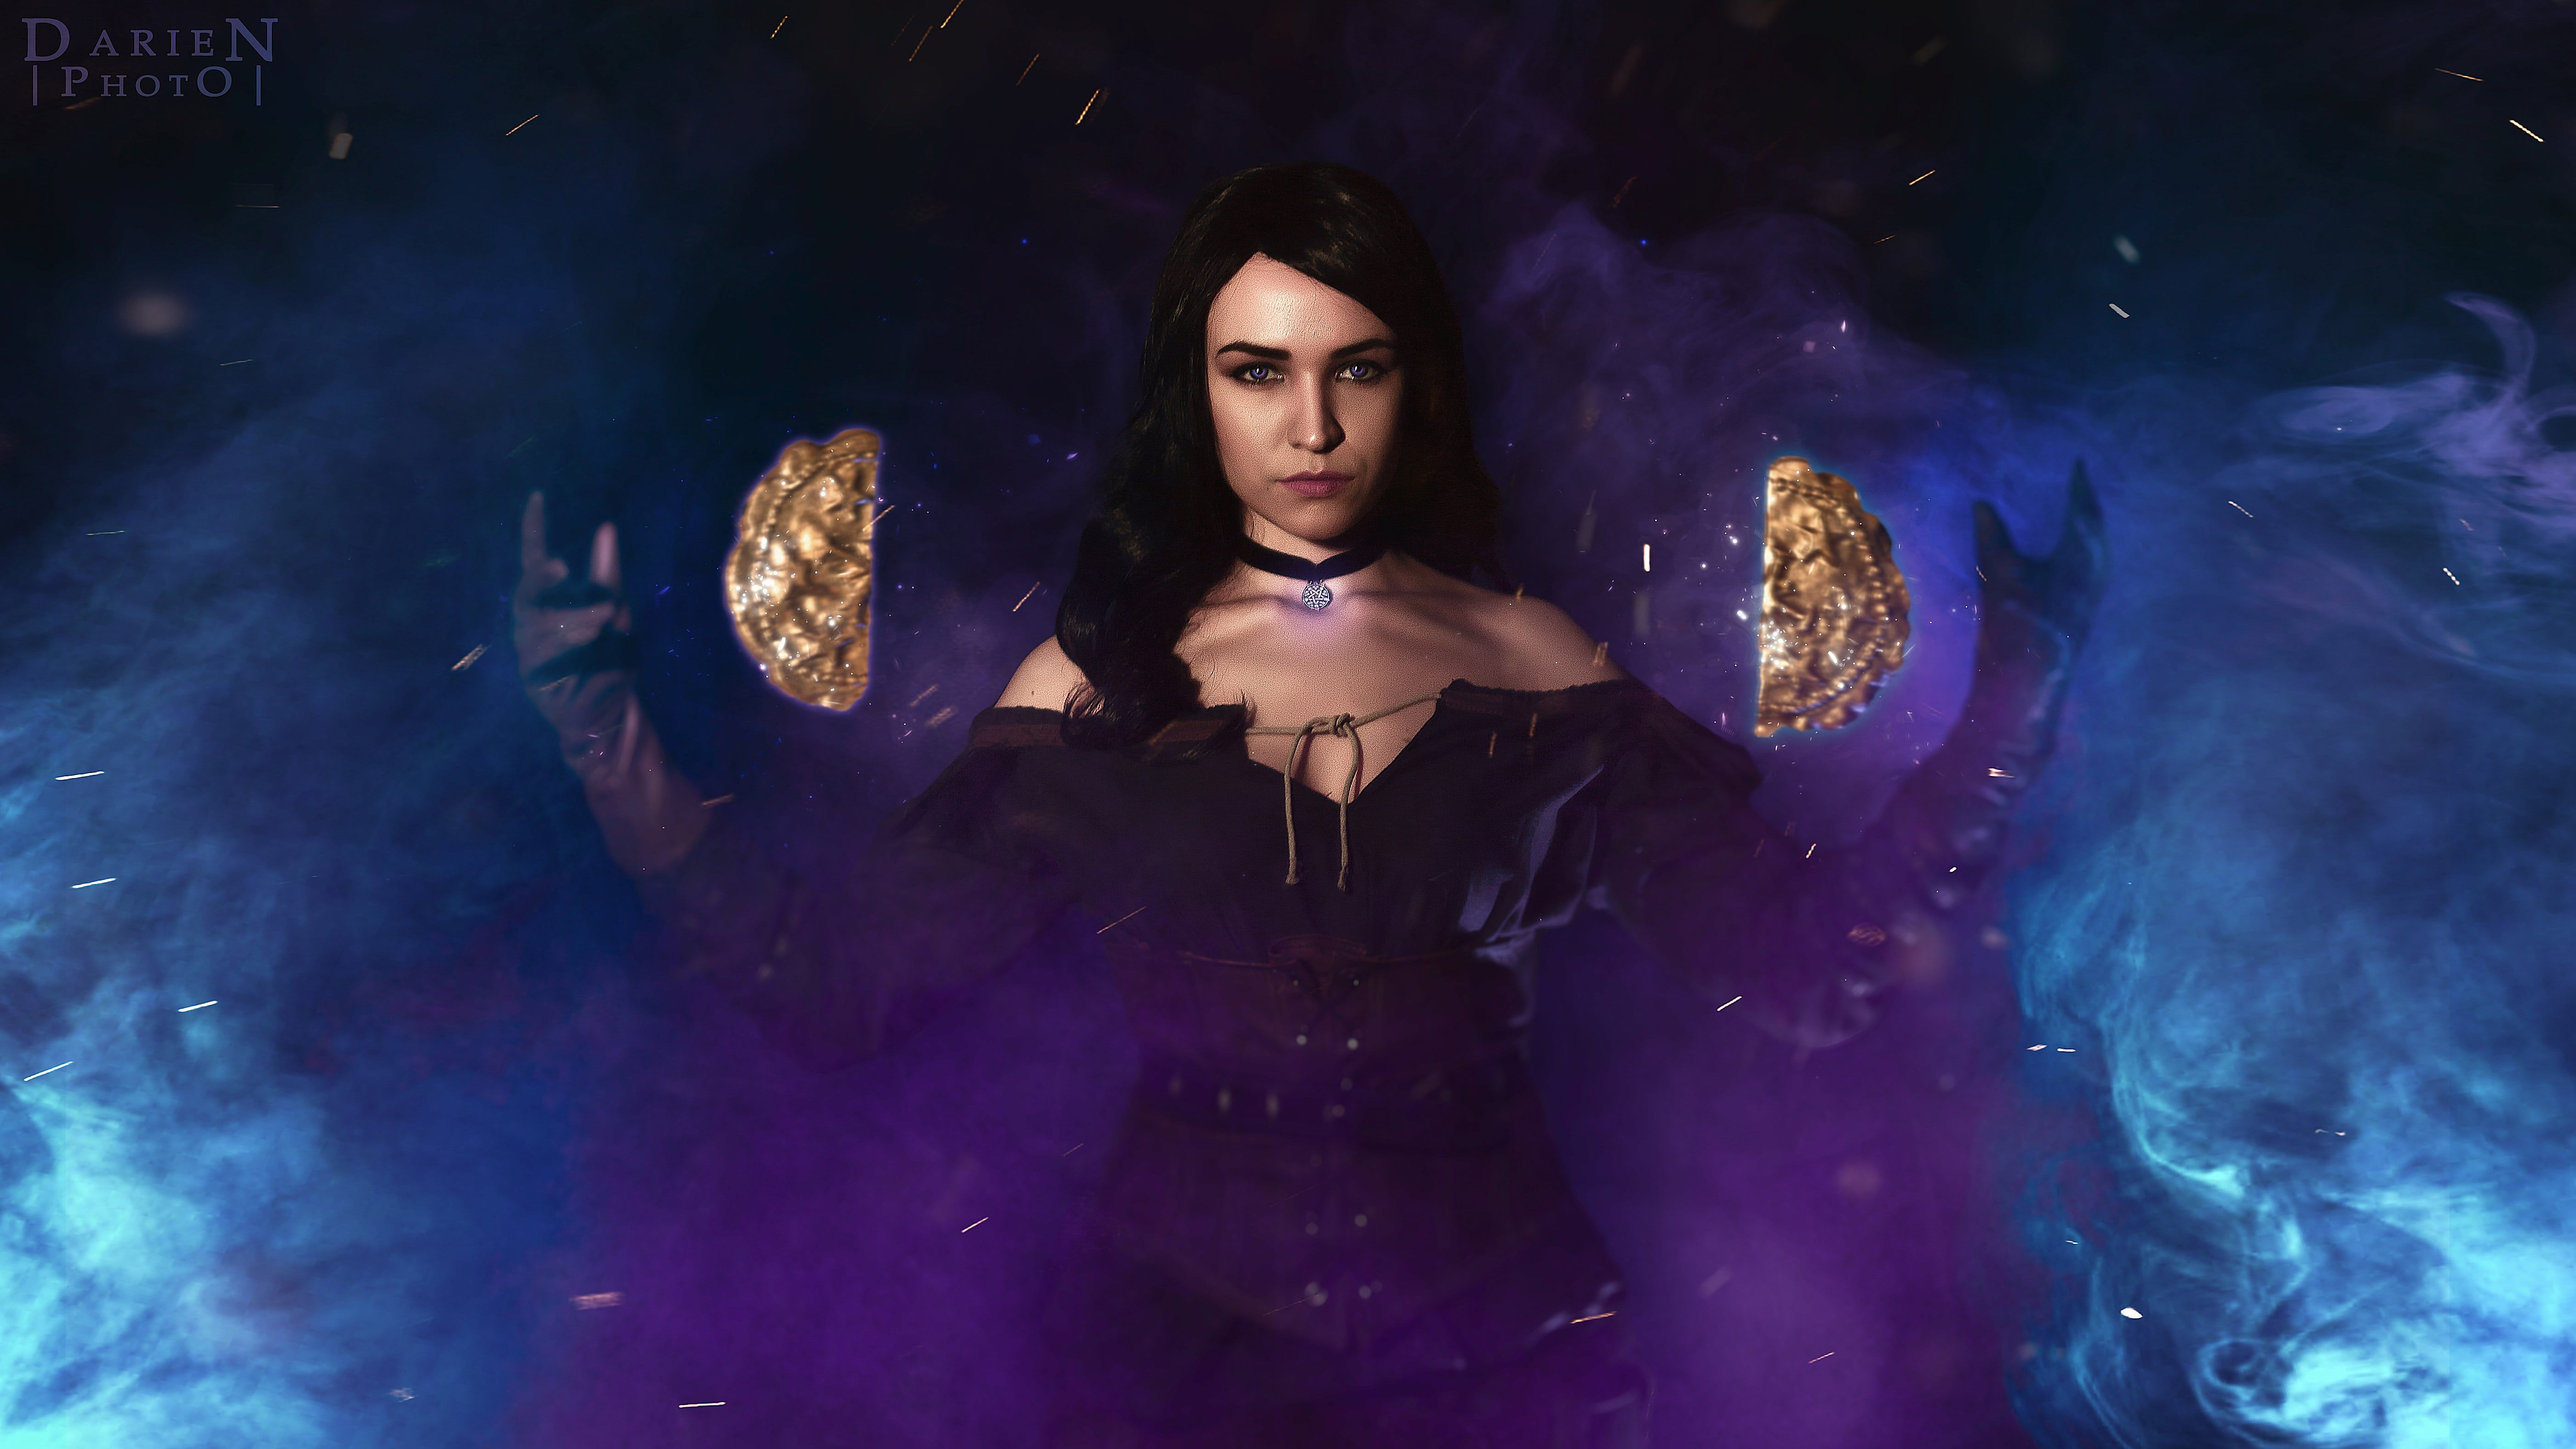 Witcher 3 Wild Hunt Yennefer Vengerberg Cosplay Gaming Desktop Hd Wallpaper The Witcher Witcher 3 Wild Hunt The Witcher 3